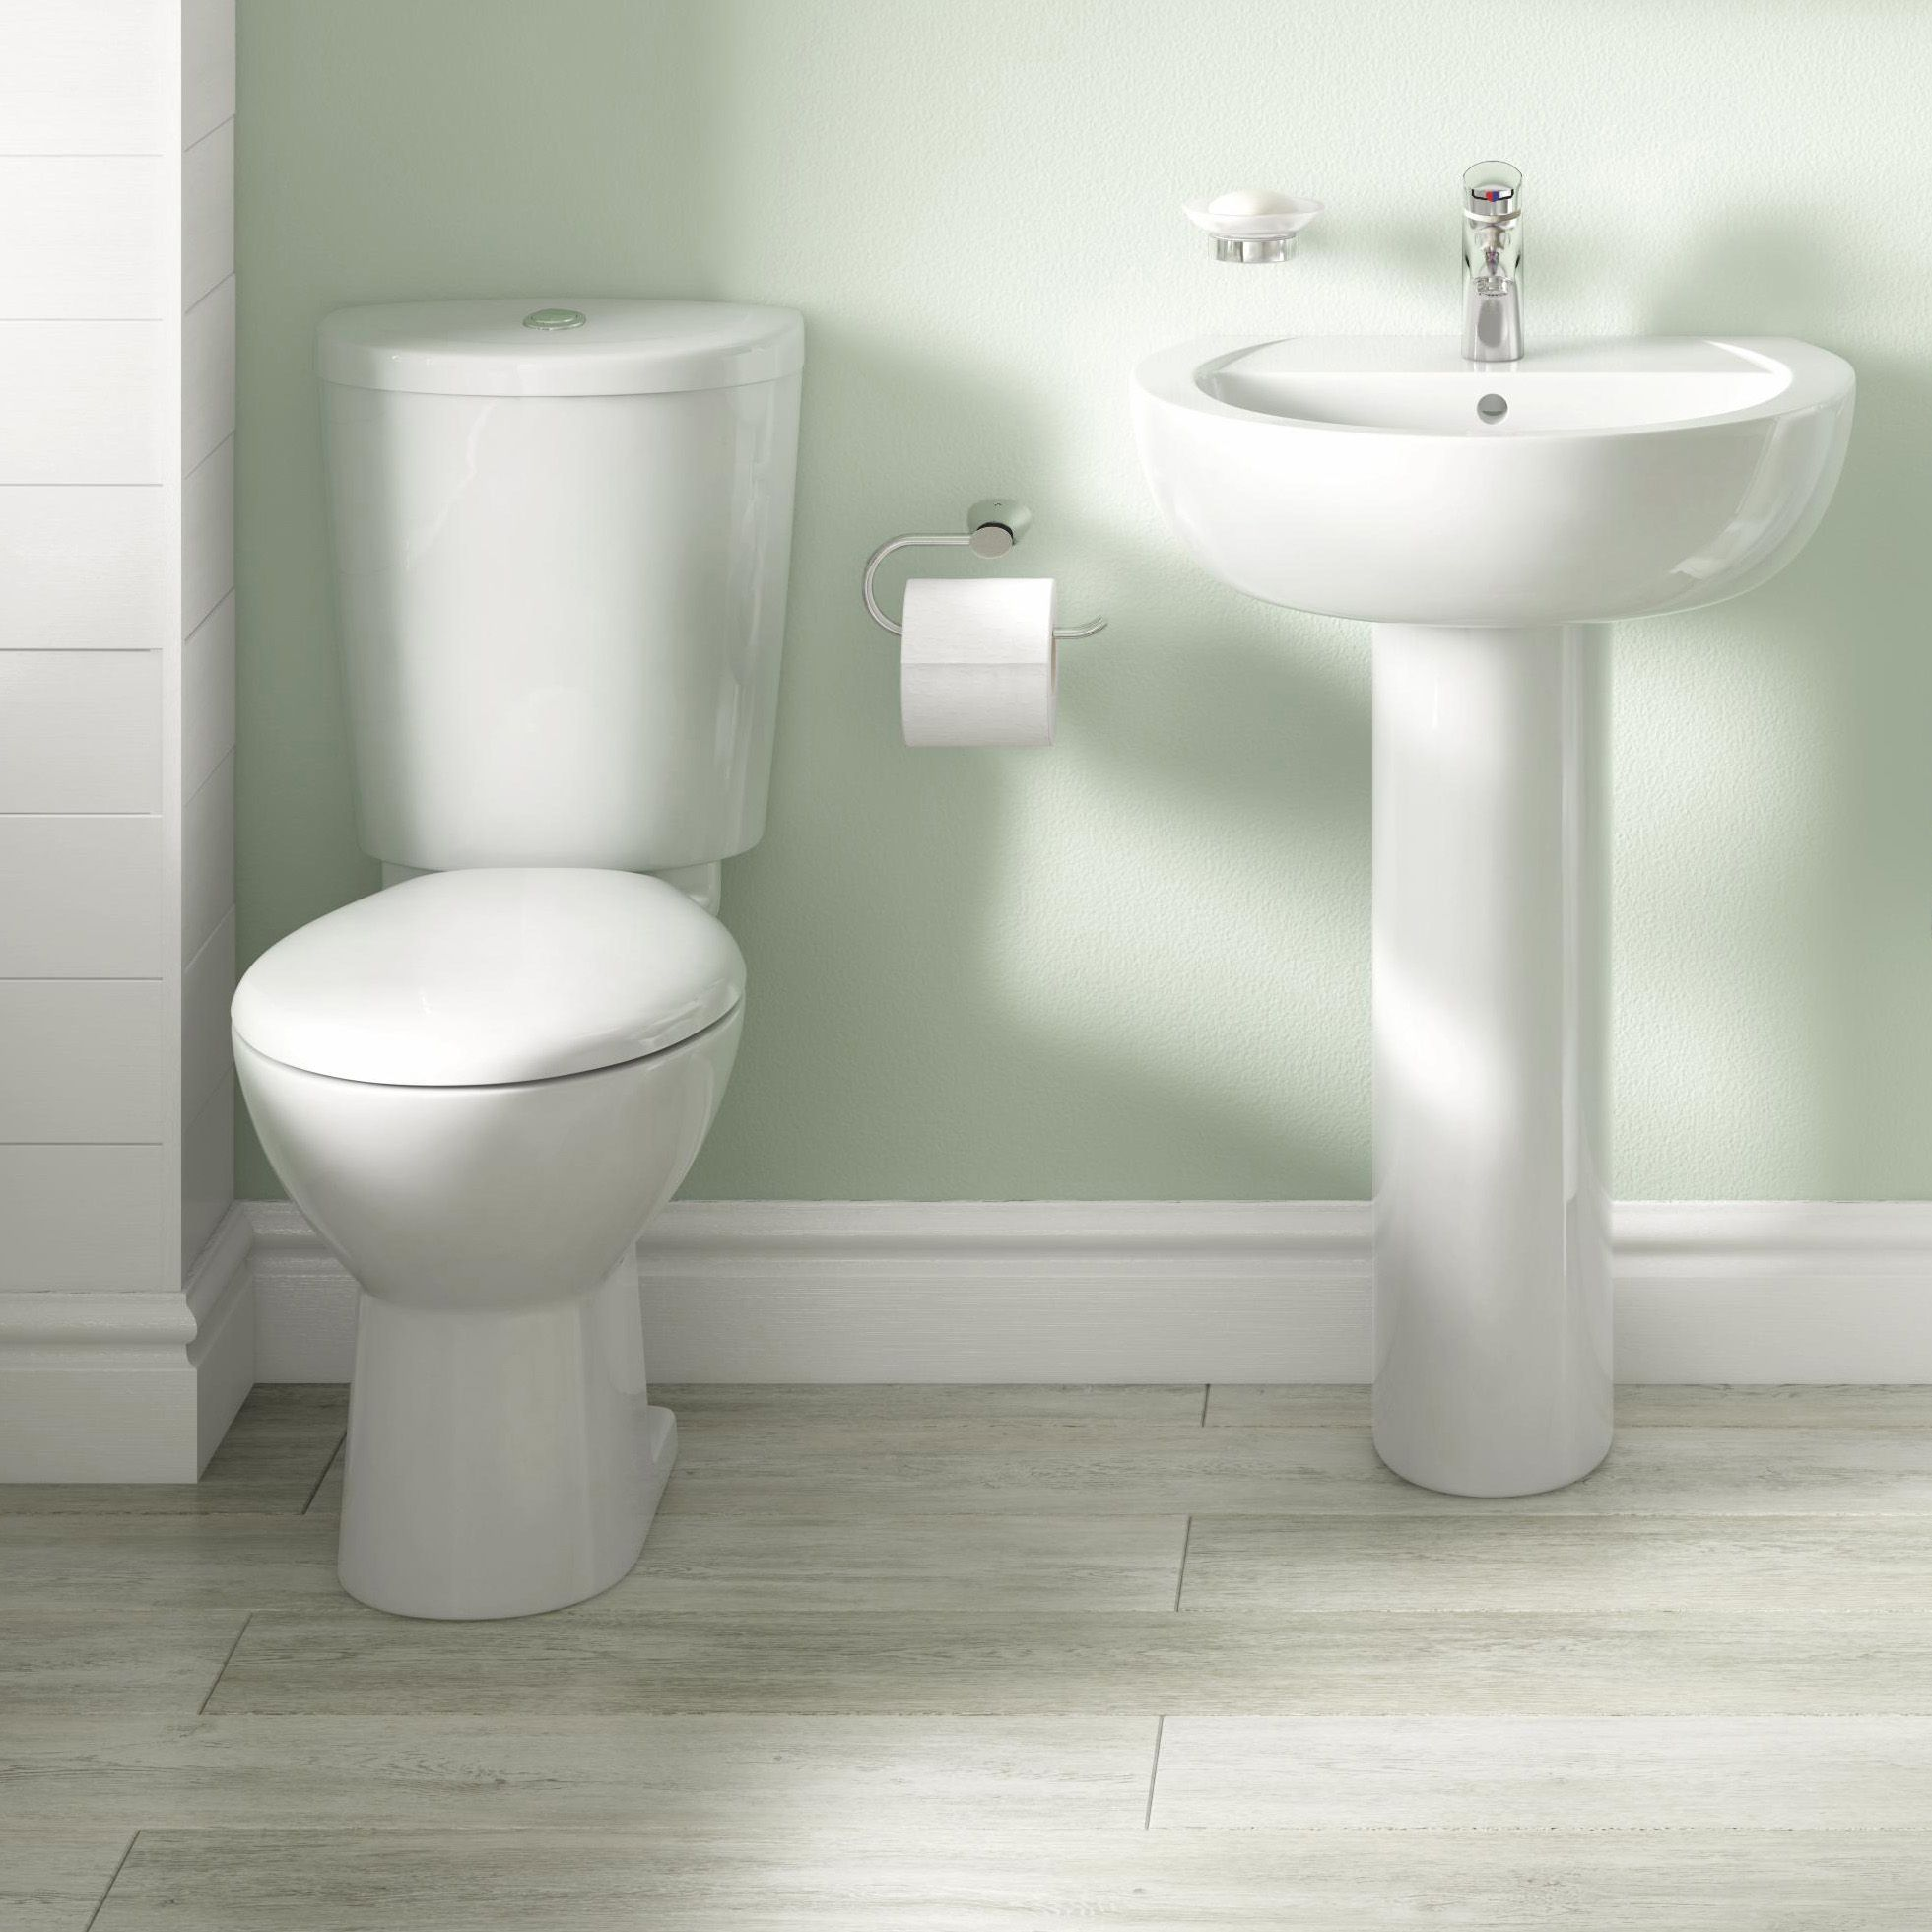 Bathroom Sinks B&Q cooke & lewis alonso toilet, basin & tap pack | departments | diy